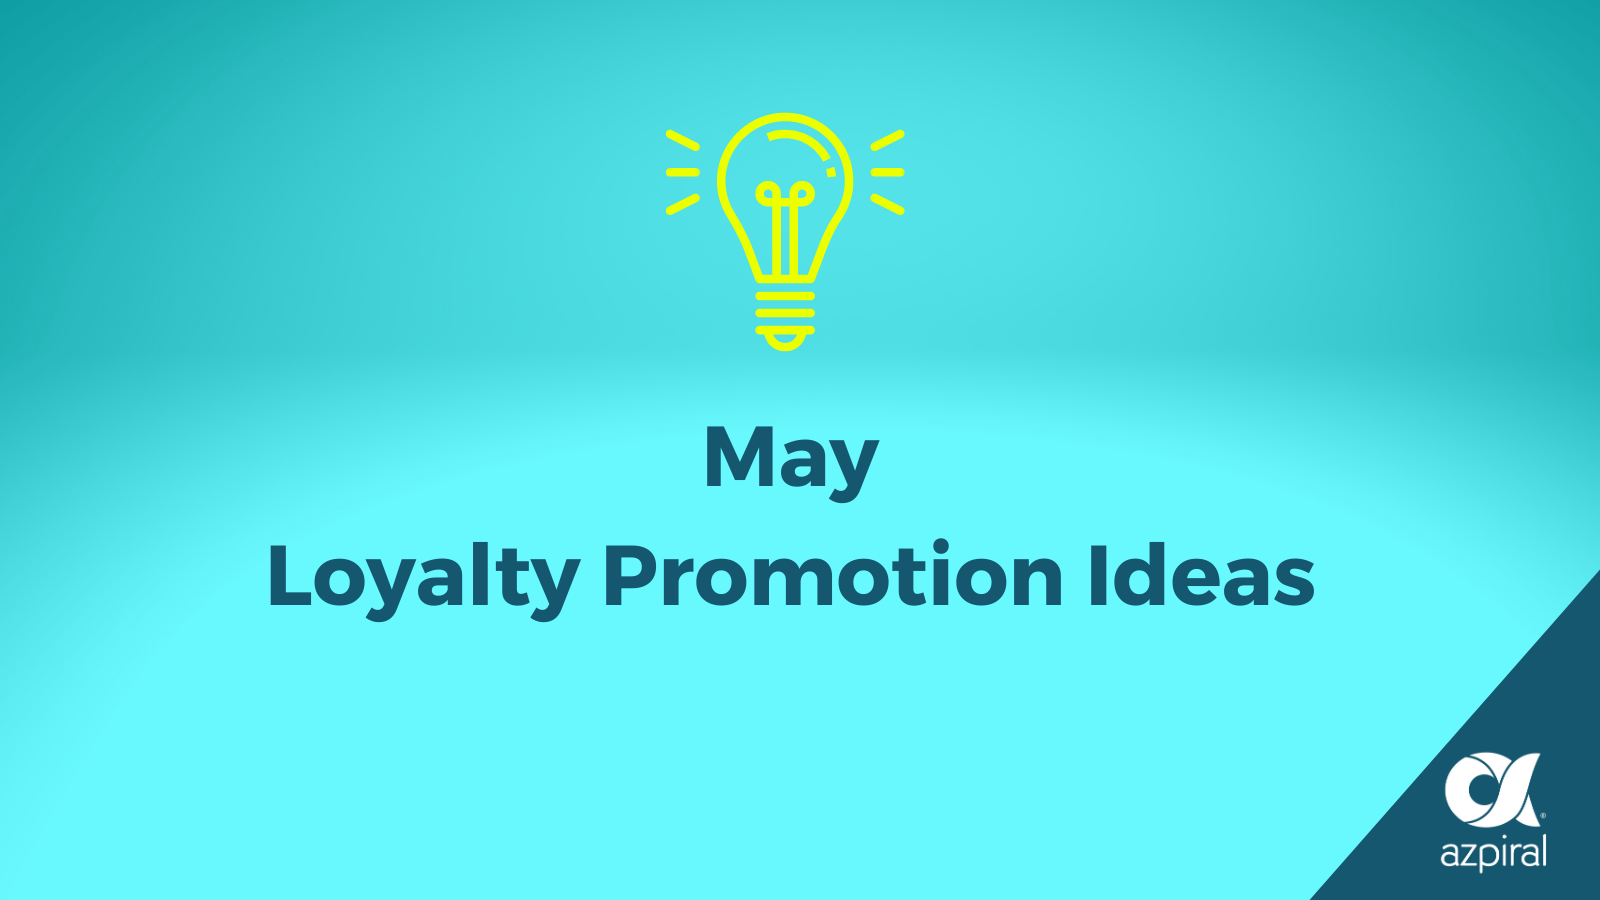 Loyalty Promotion